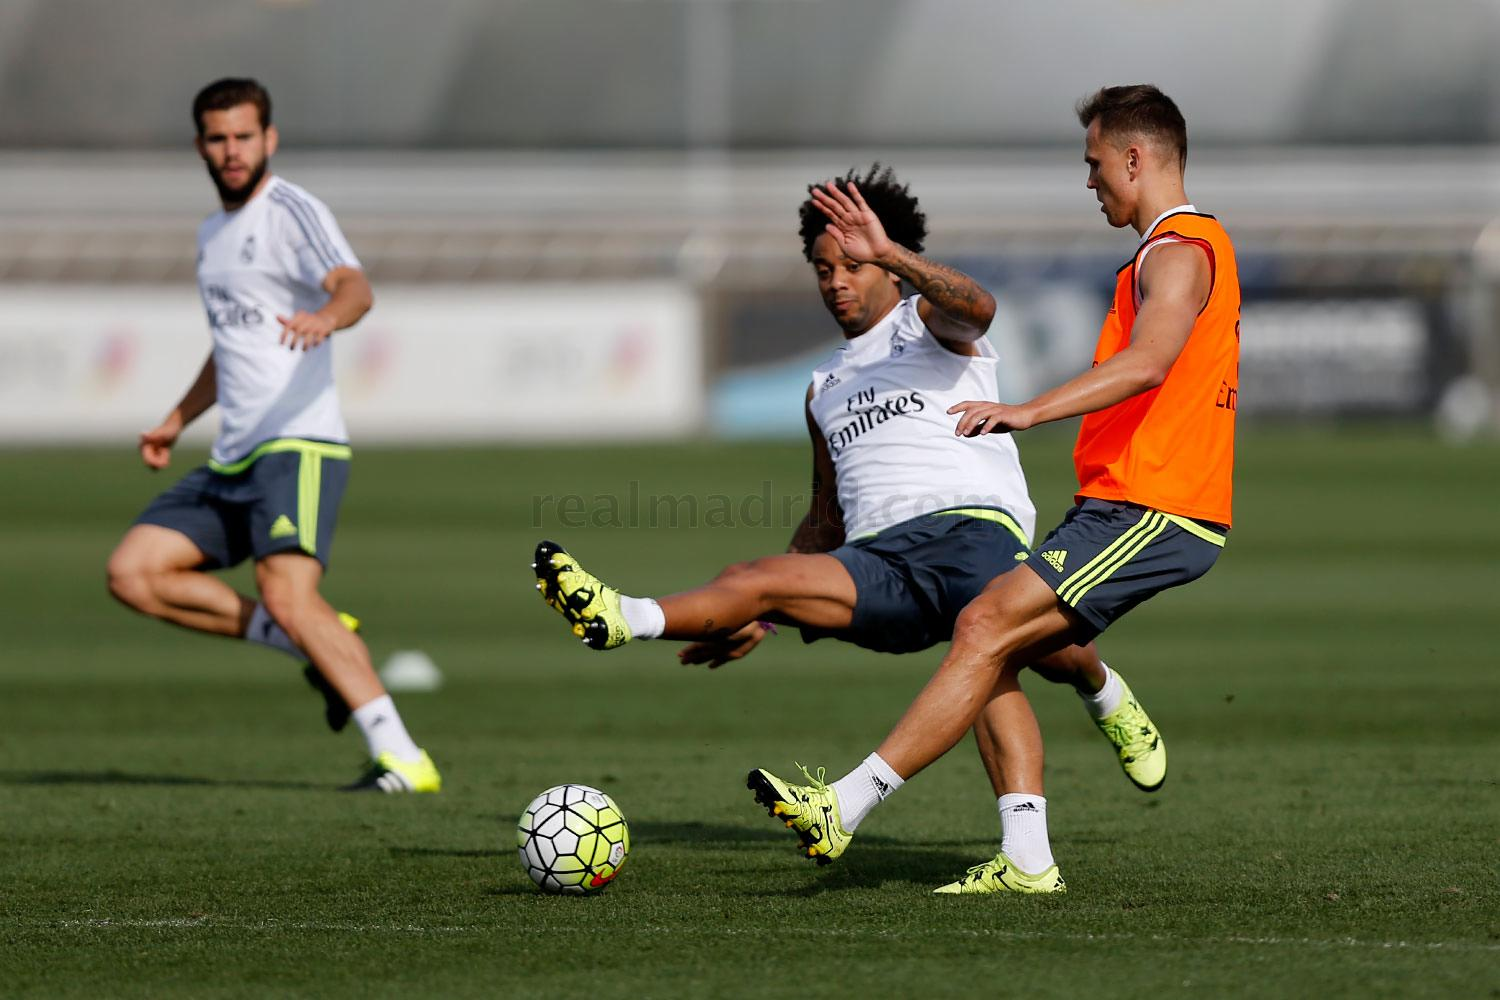 Real Madrid - Entrenamiento del Real Madrid - 27-08-2015